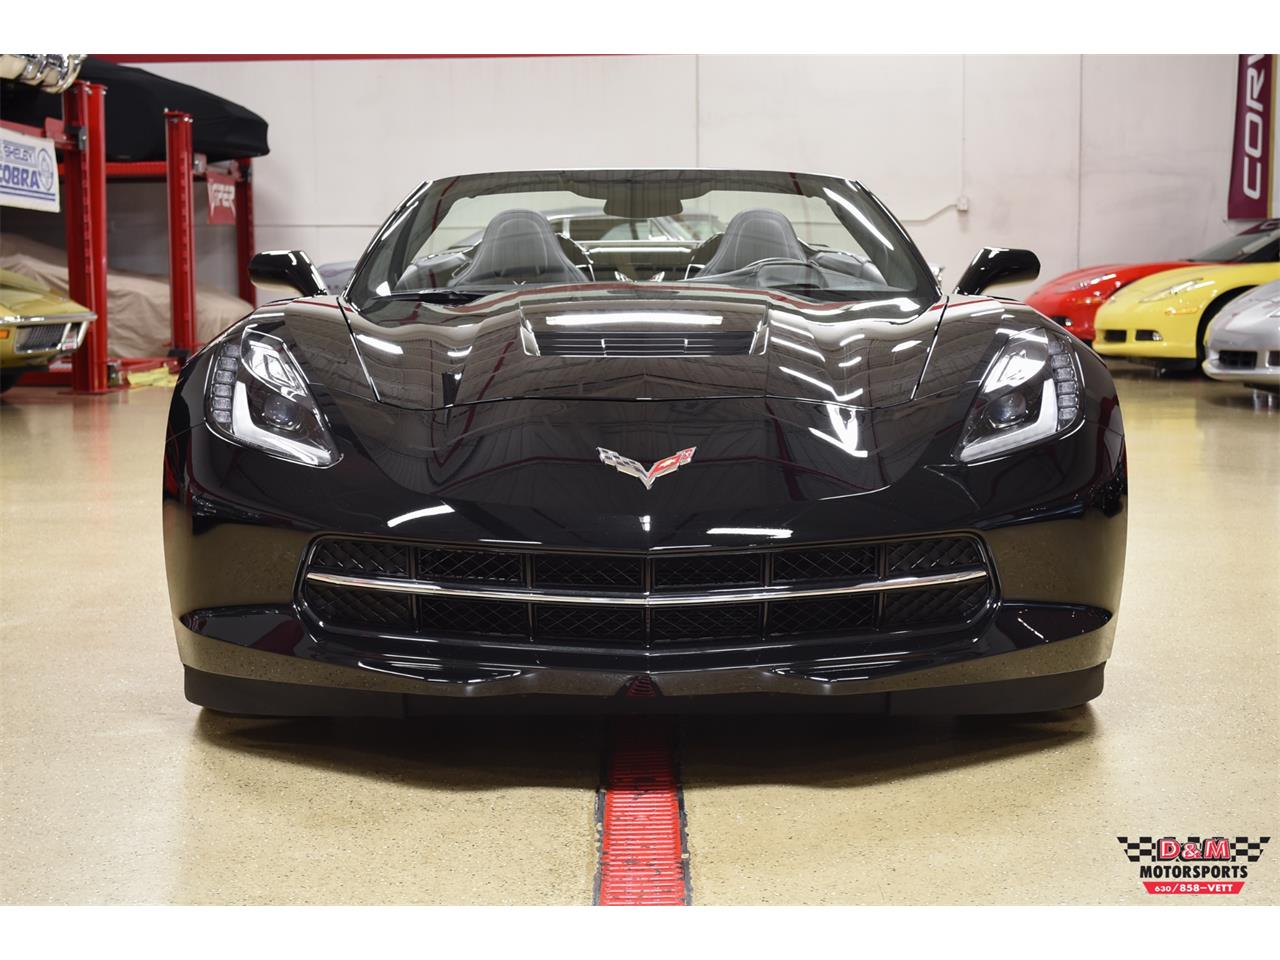 Large Picture of 2015 Corvette located in Illinois Offered by D & M Motorsports - PZ21